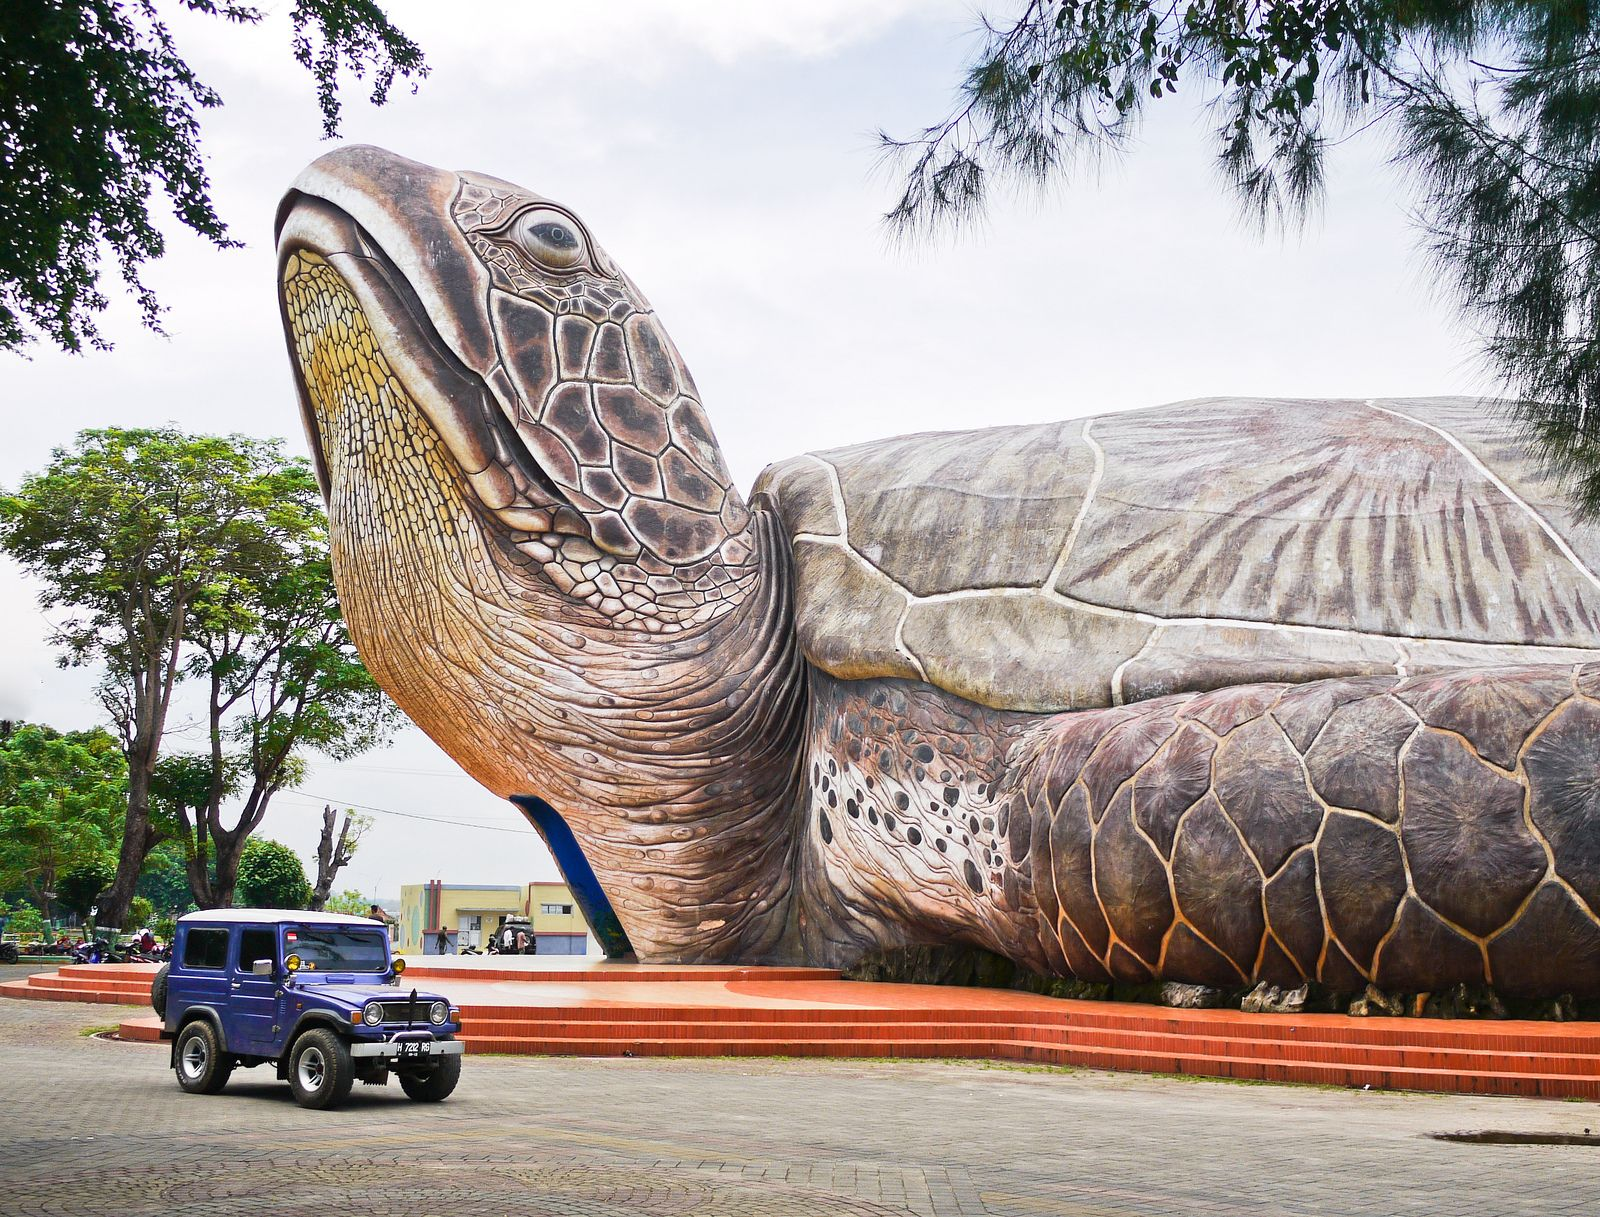 The biggest turtle in the world: photo 64